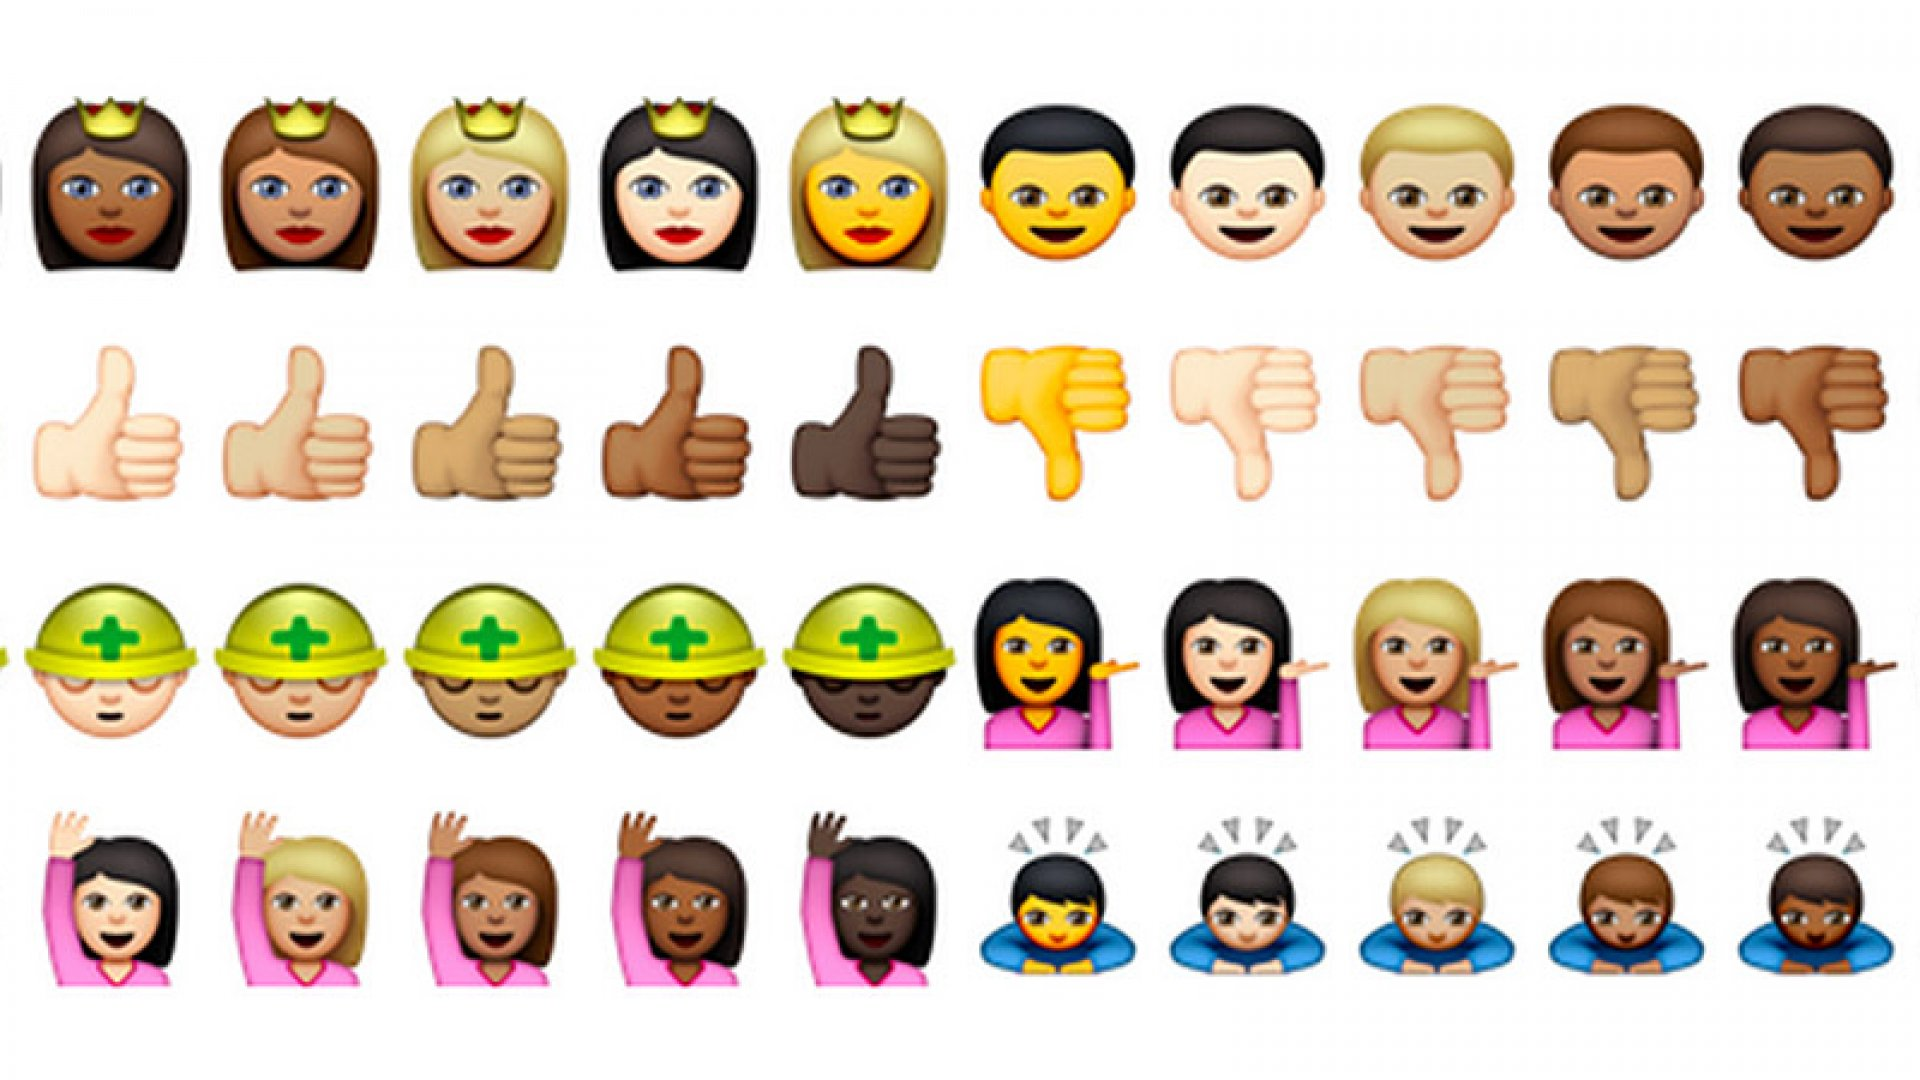 Emojis Get More Diverse in Apple's Latest iPhone Update